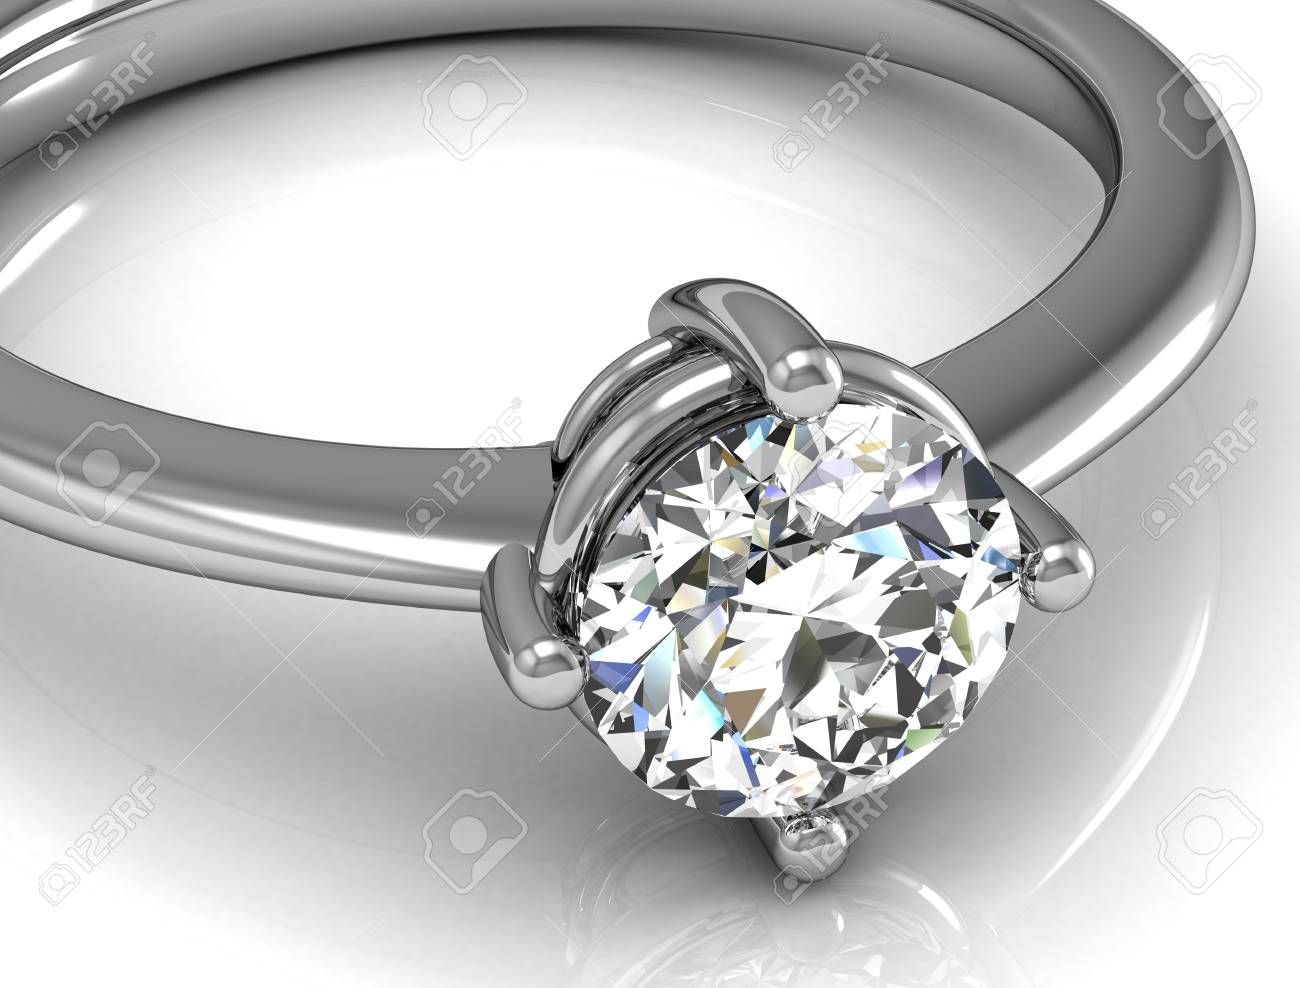 Jewellery ring on a white background high resolution 3D image